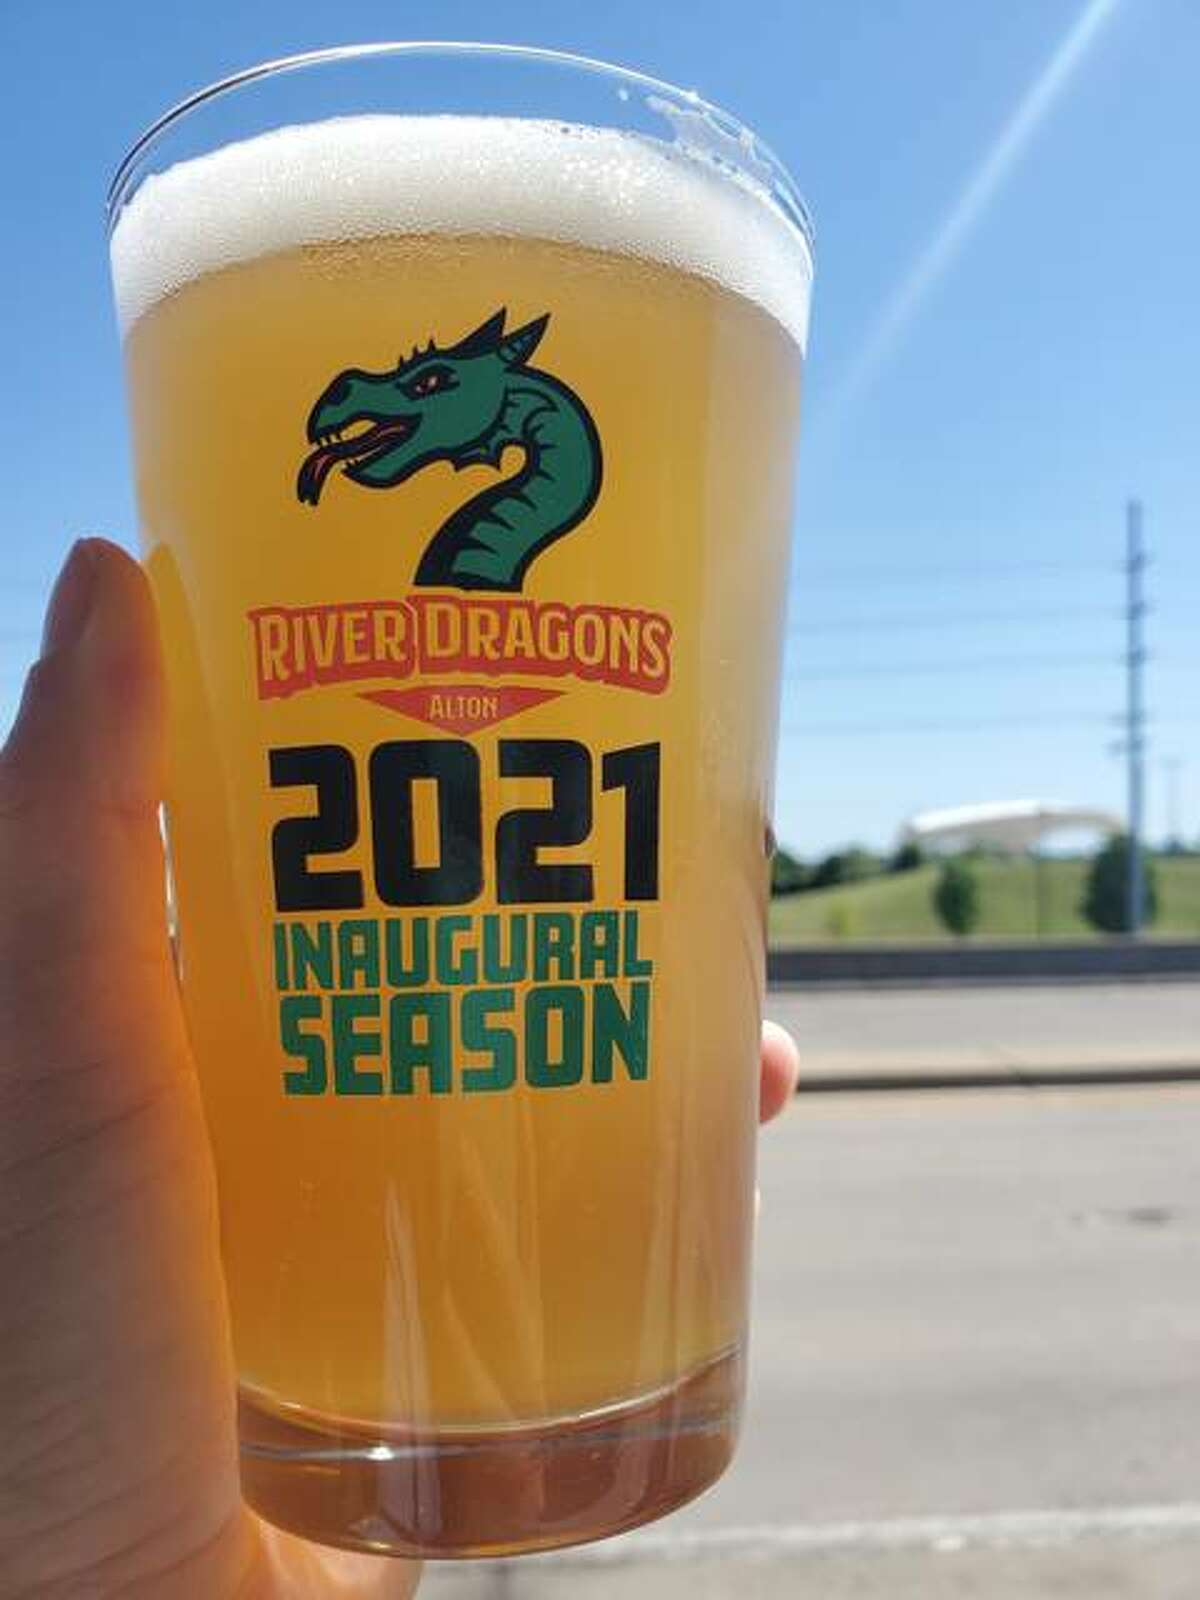 All-Star Restaurant Week returns to the Riverbend July 9-18. This year's commemorative glass celebrates the inaugural season of the River Dragons baseball in Alton.